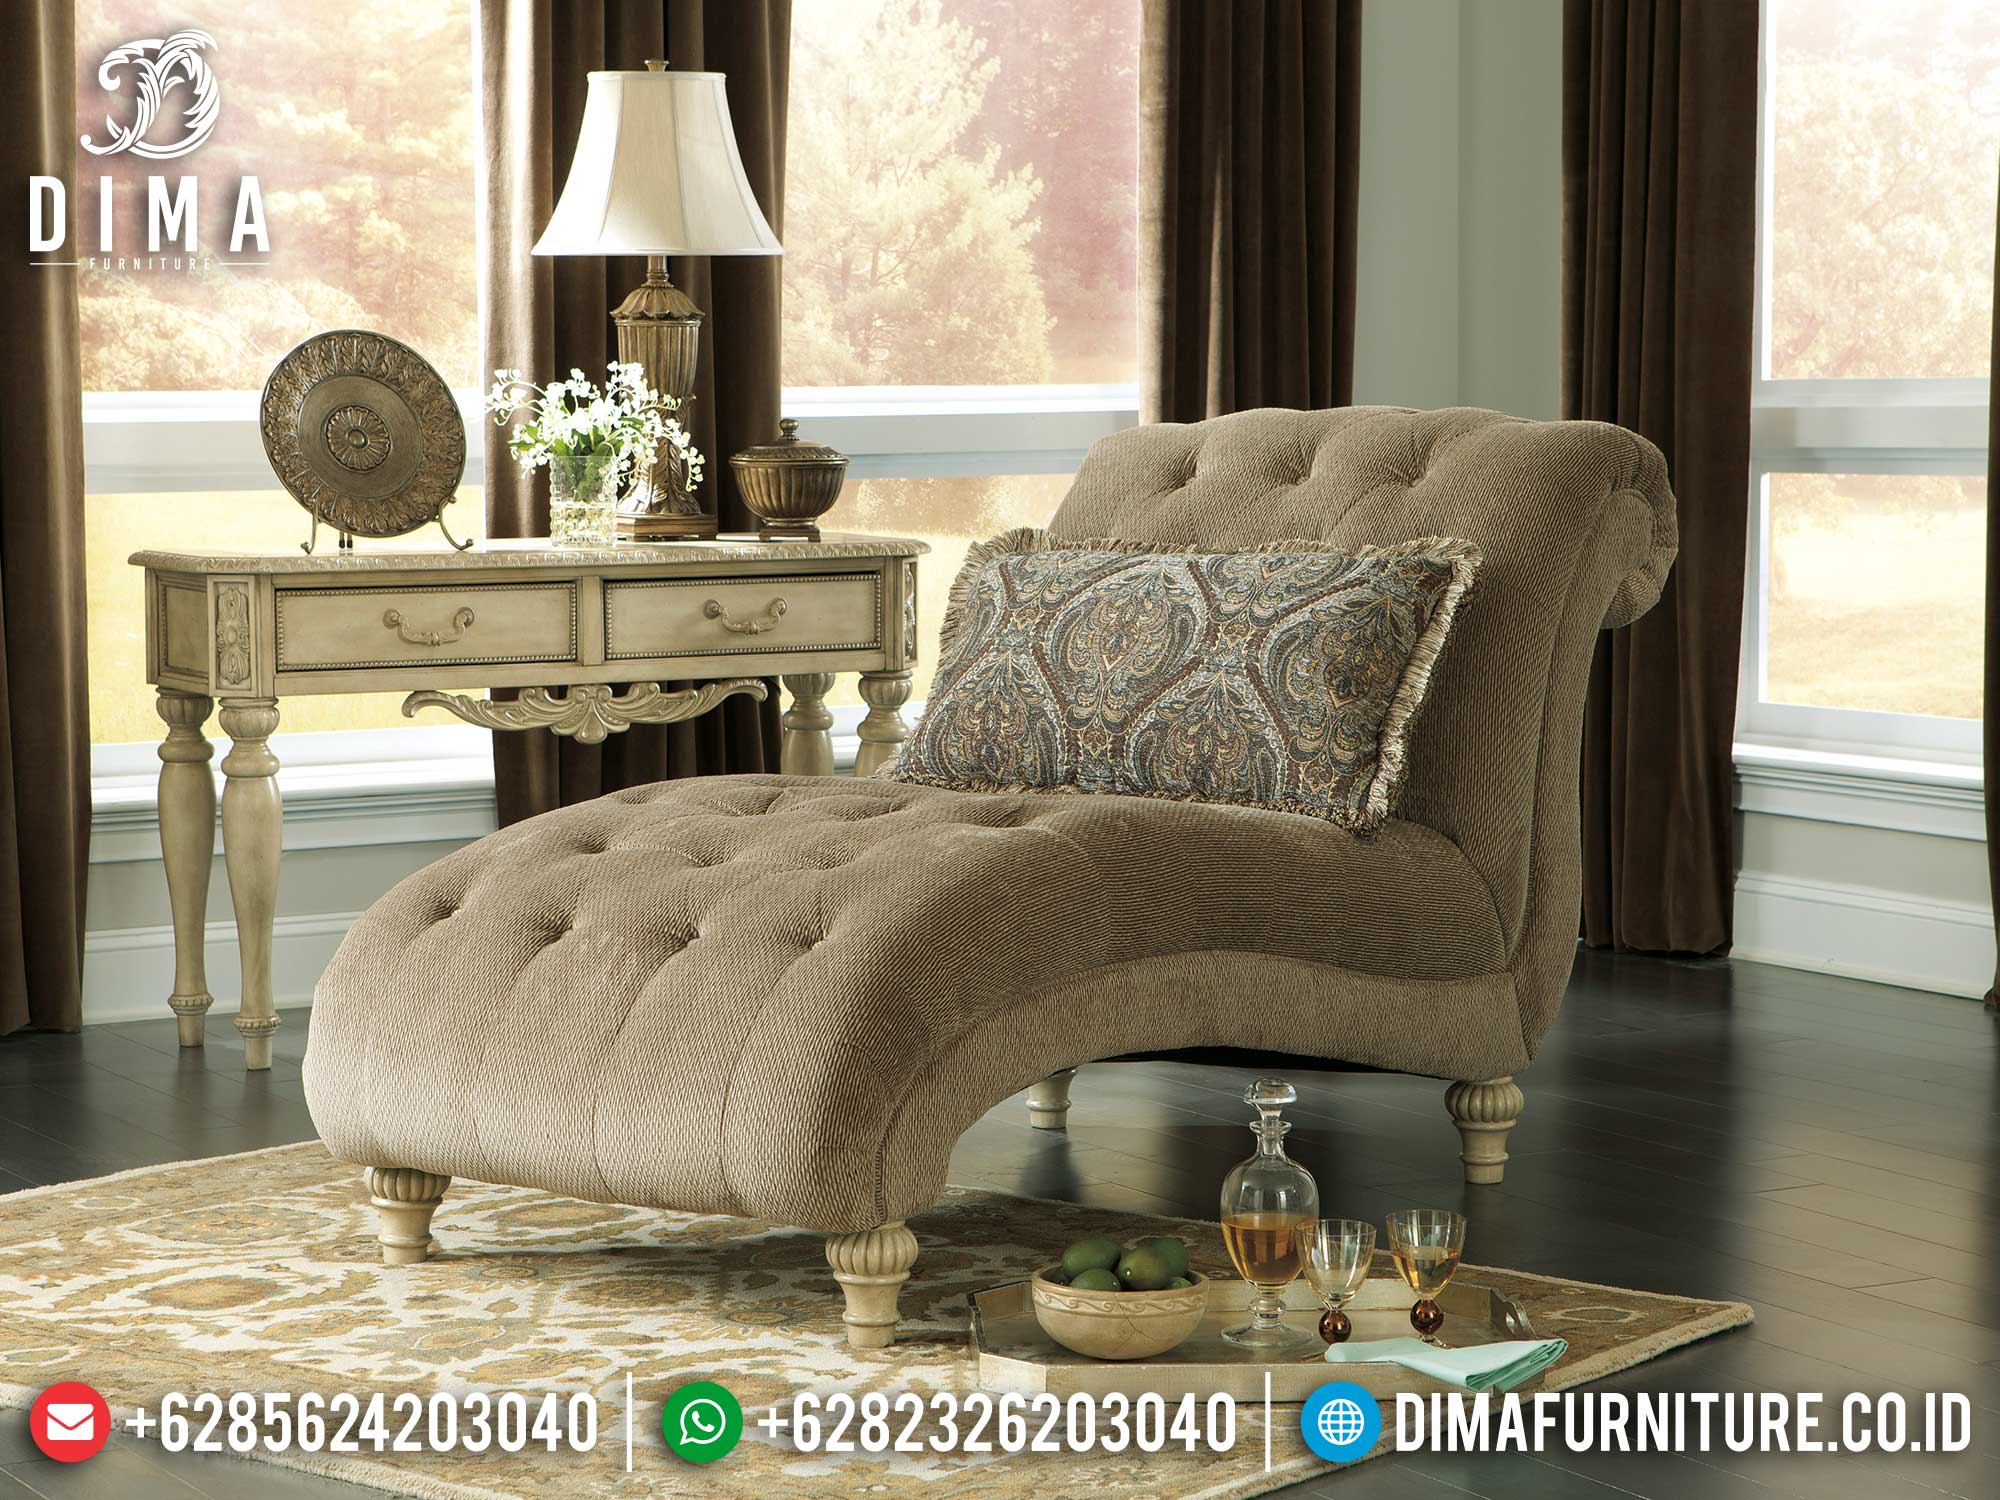 New Sofa Malas Santai Luxury Design Furniture Jepara Terbaru TTJ-1364